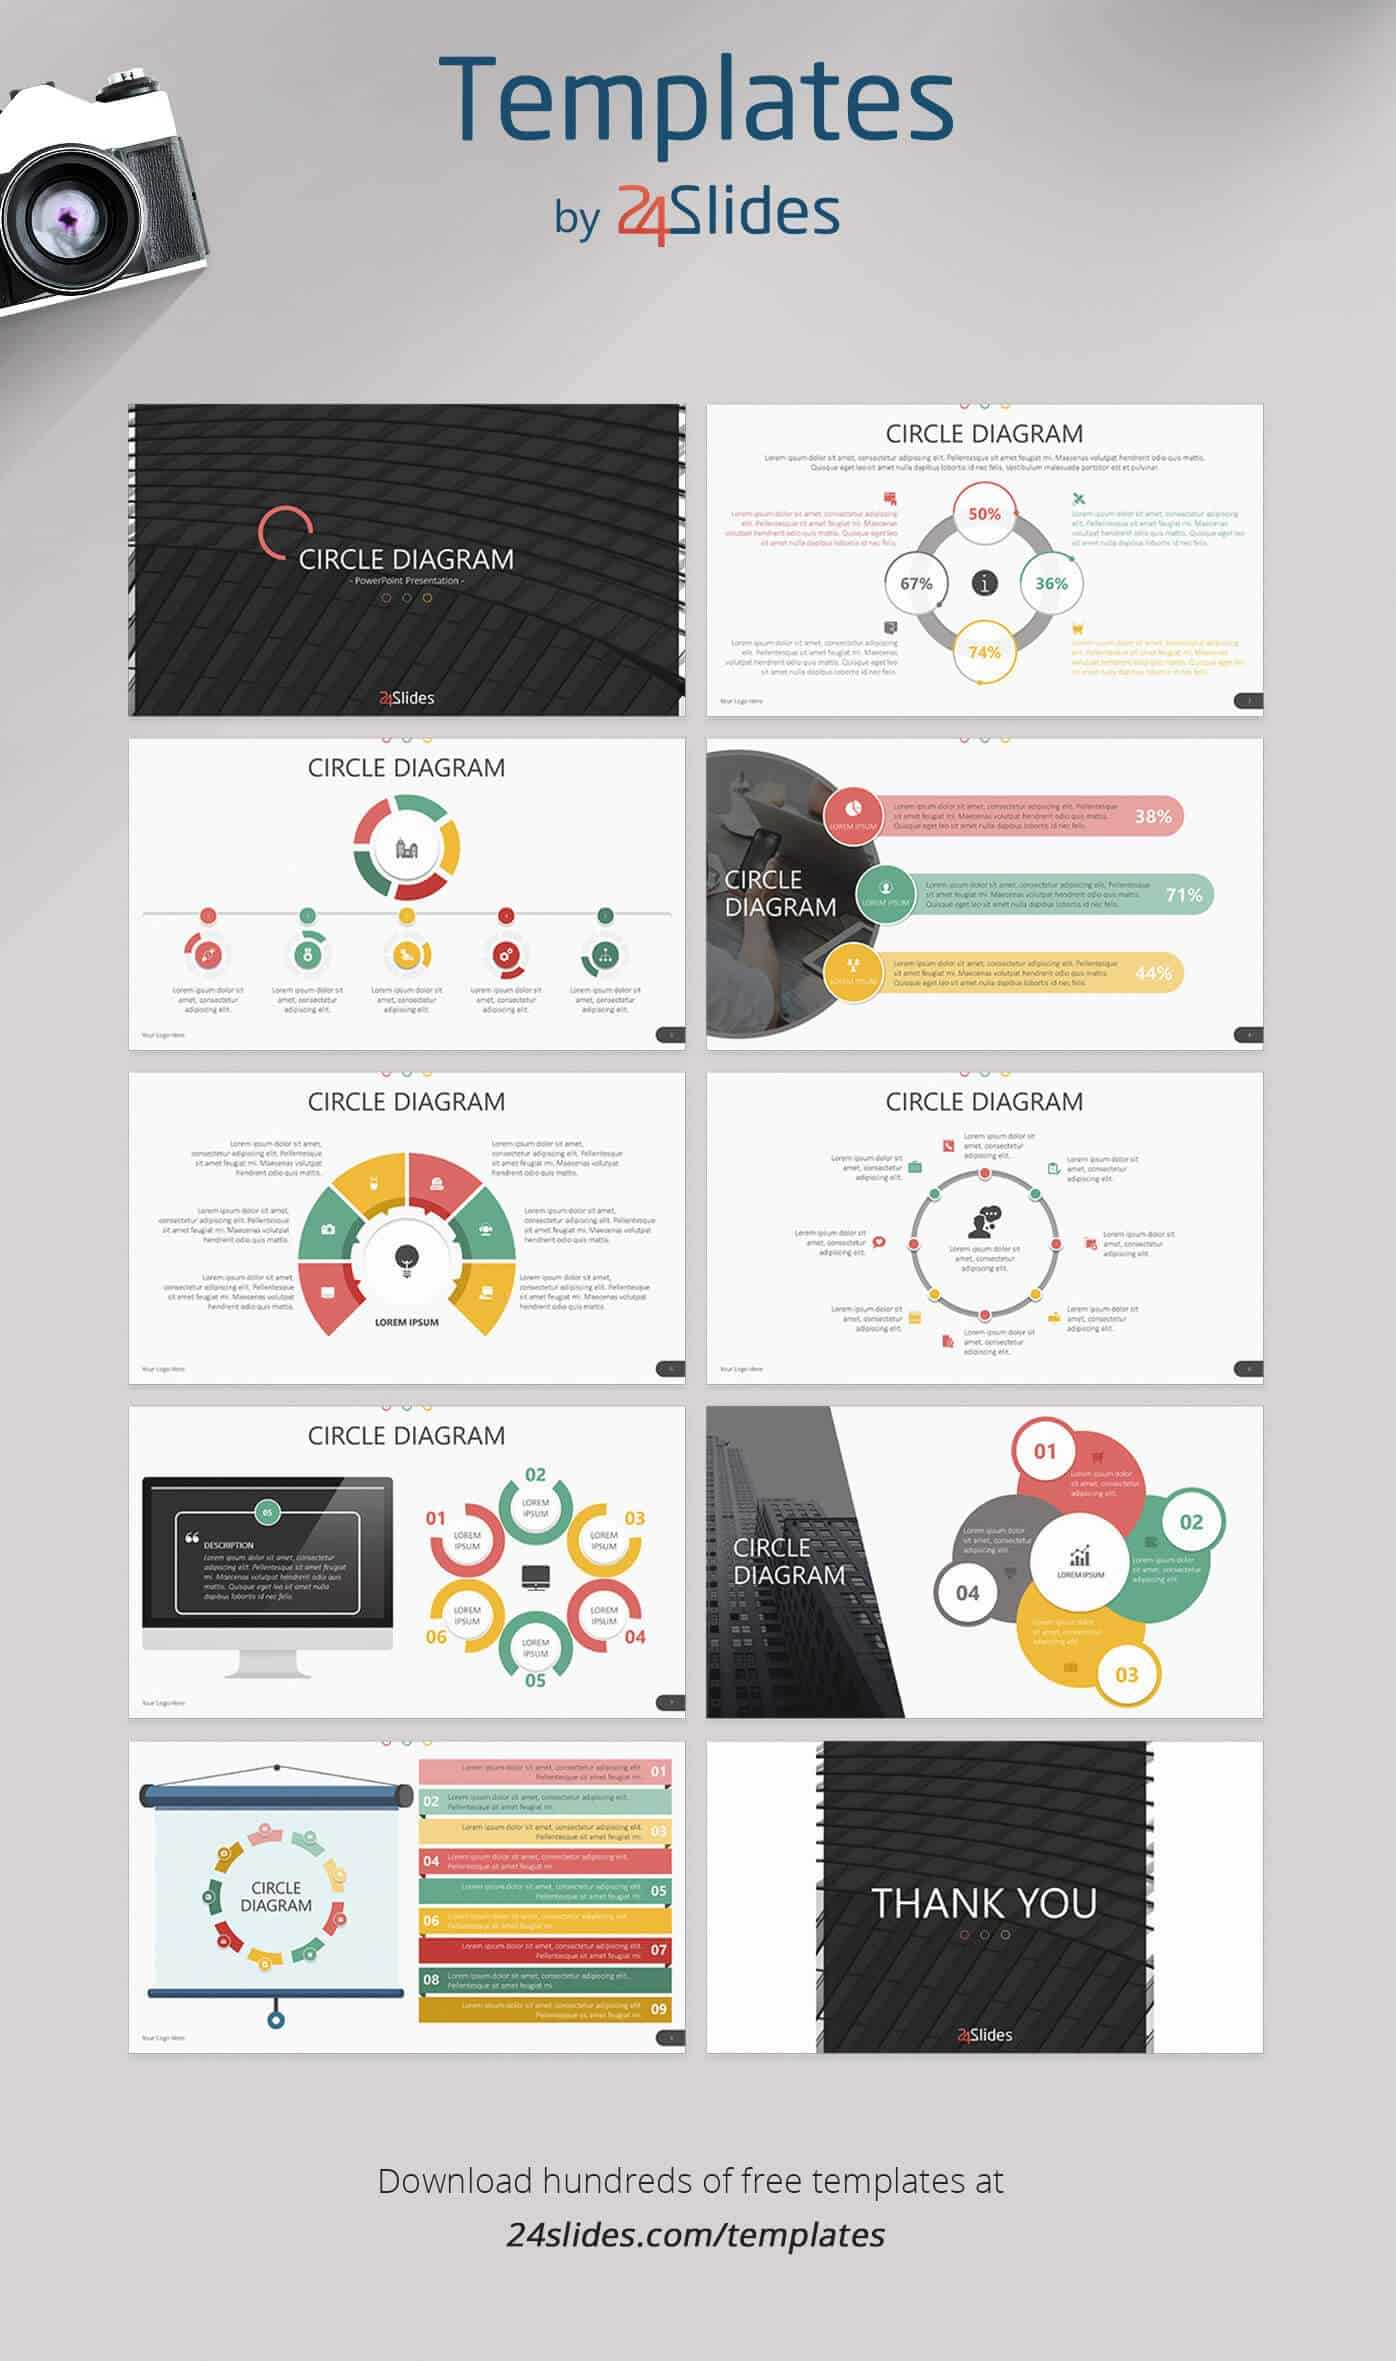 15 Fun And Colorful Free Powerpoint Templates | Present Better With Sample Templates For Powerpoint Presentation